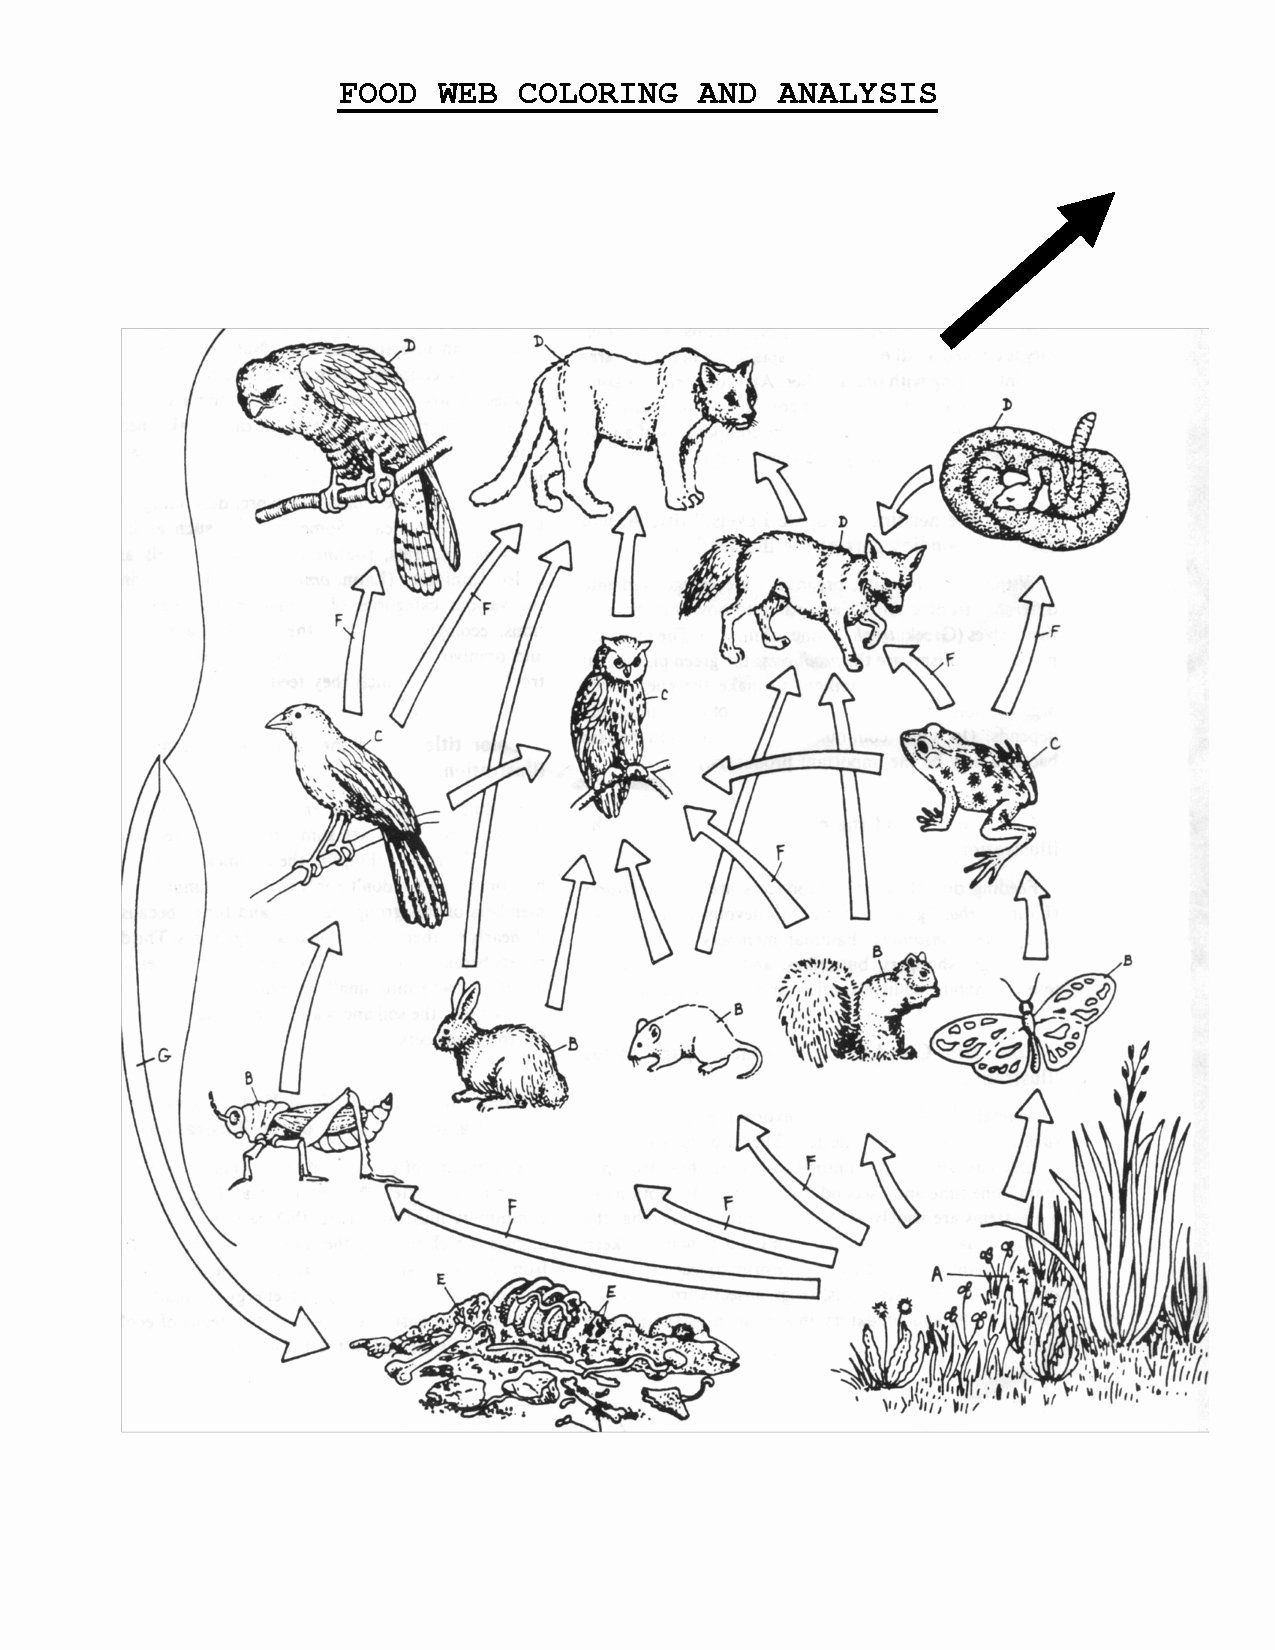 Picnic Food Coloring Pages Inspirational Food Chain Coloring Pages In 2020 Food Web Food Chain Coloring Pages